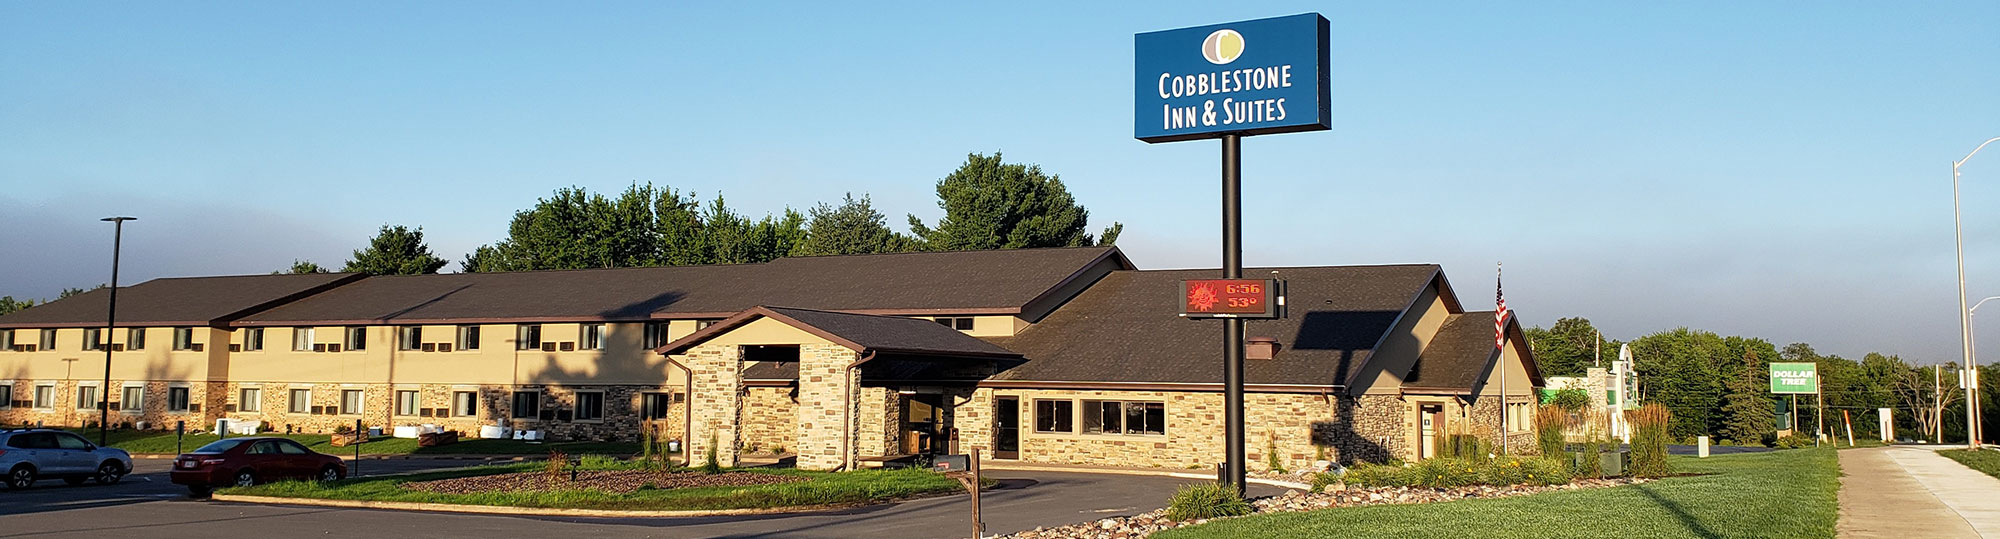 Cobblestone Inn and Suites Merrill